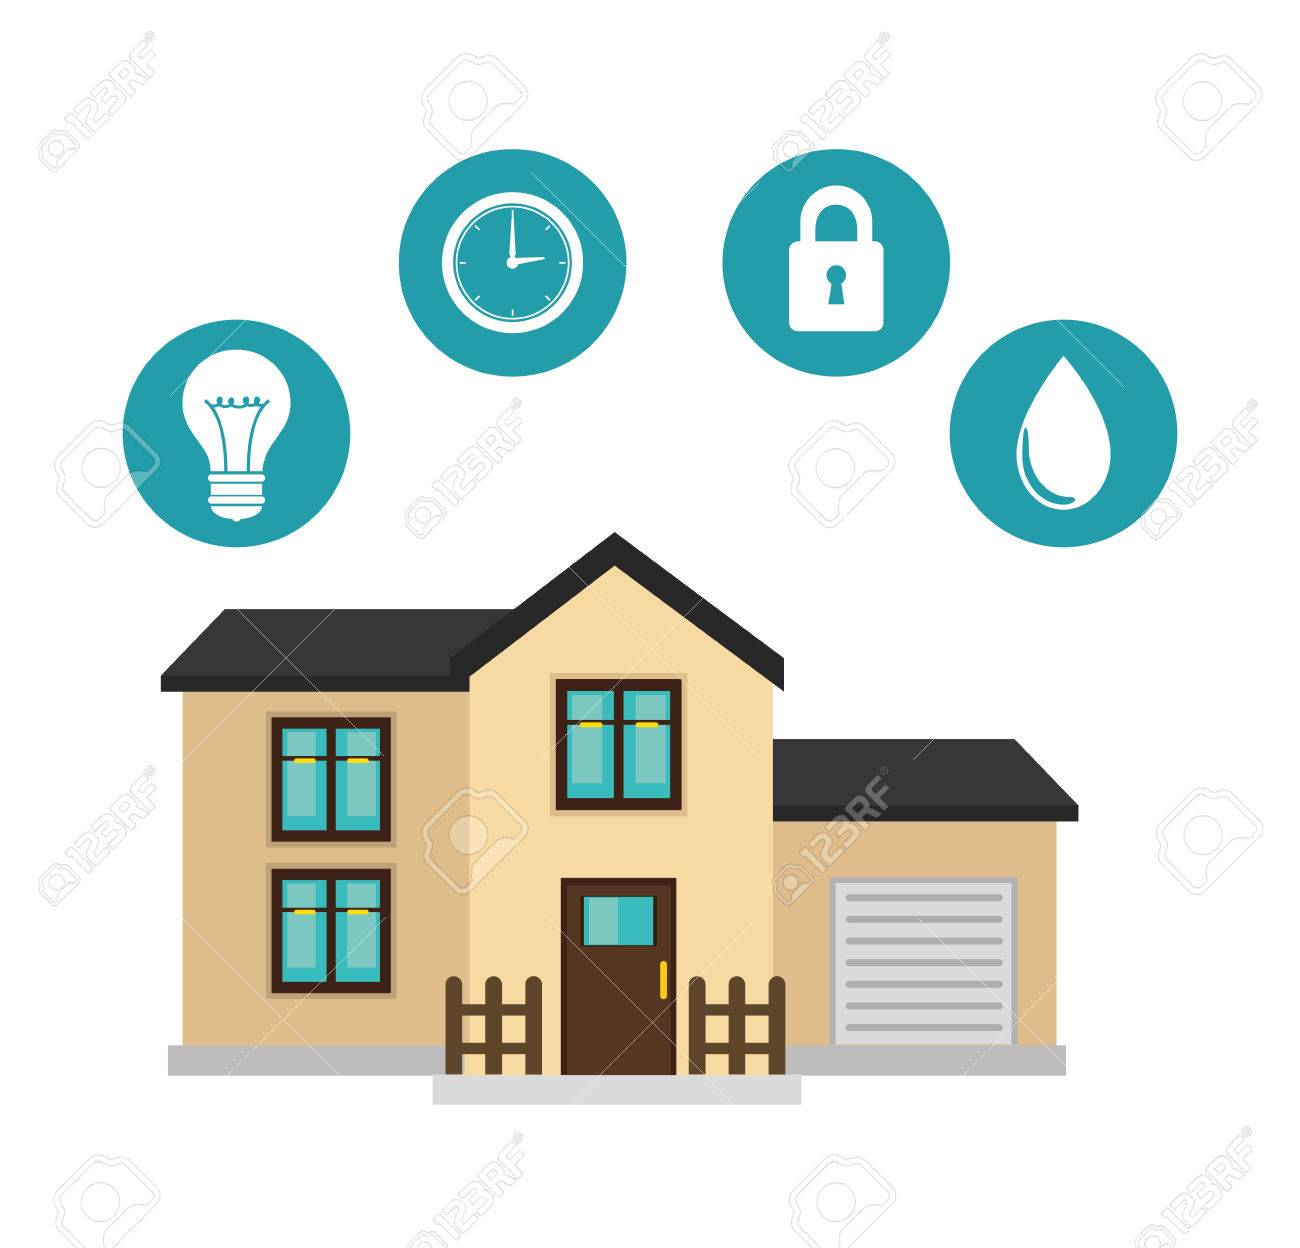 Smart Home Technology Icon Vector Illustration Design Royalty Free ...